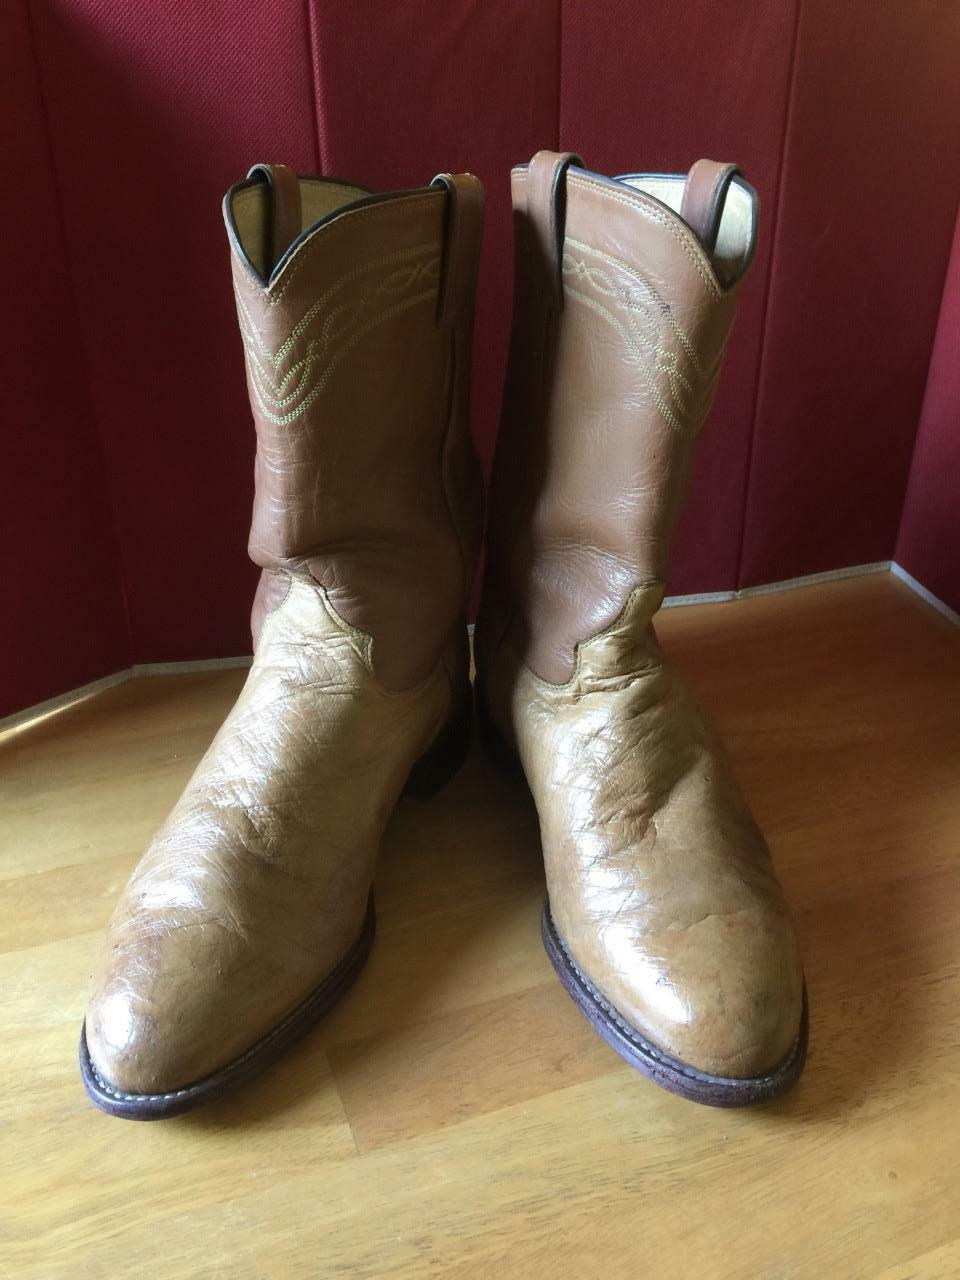 Justin Tan OSTRICH M Cognac Uppers 3022 M OSTRICH 8EE MADE IN USA WESTERN ROPER Stiefel 8 EE 0ff1f5